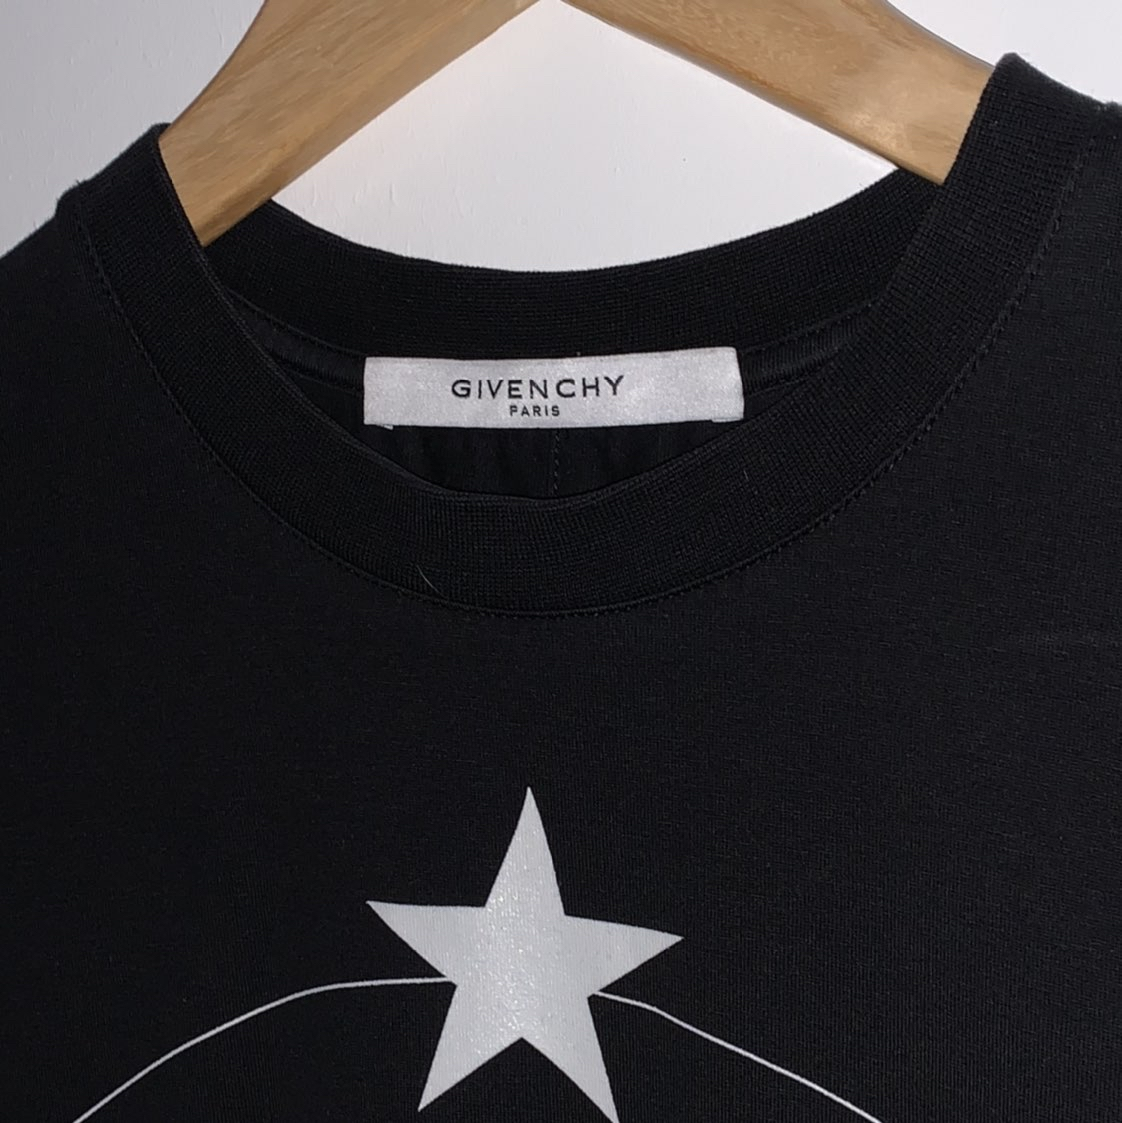 Givenchy Monkey brothers Cuban fitGivenchy2